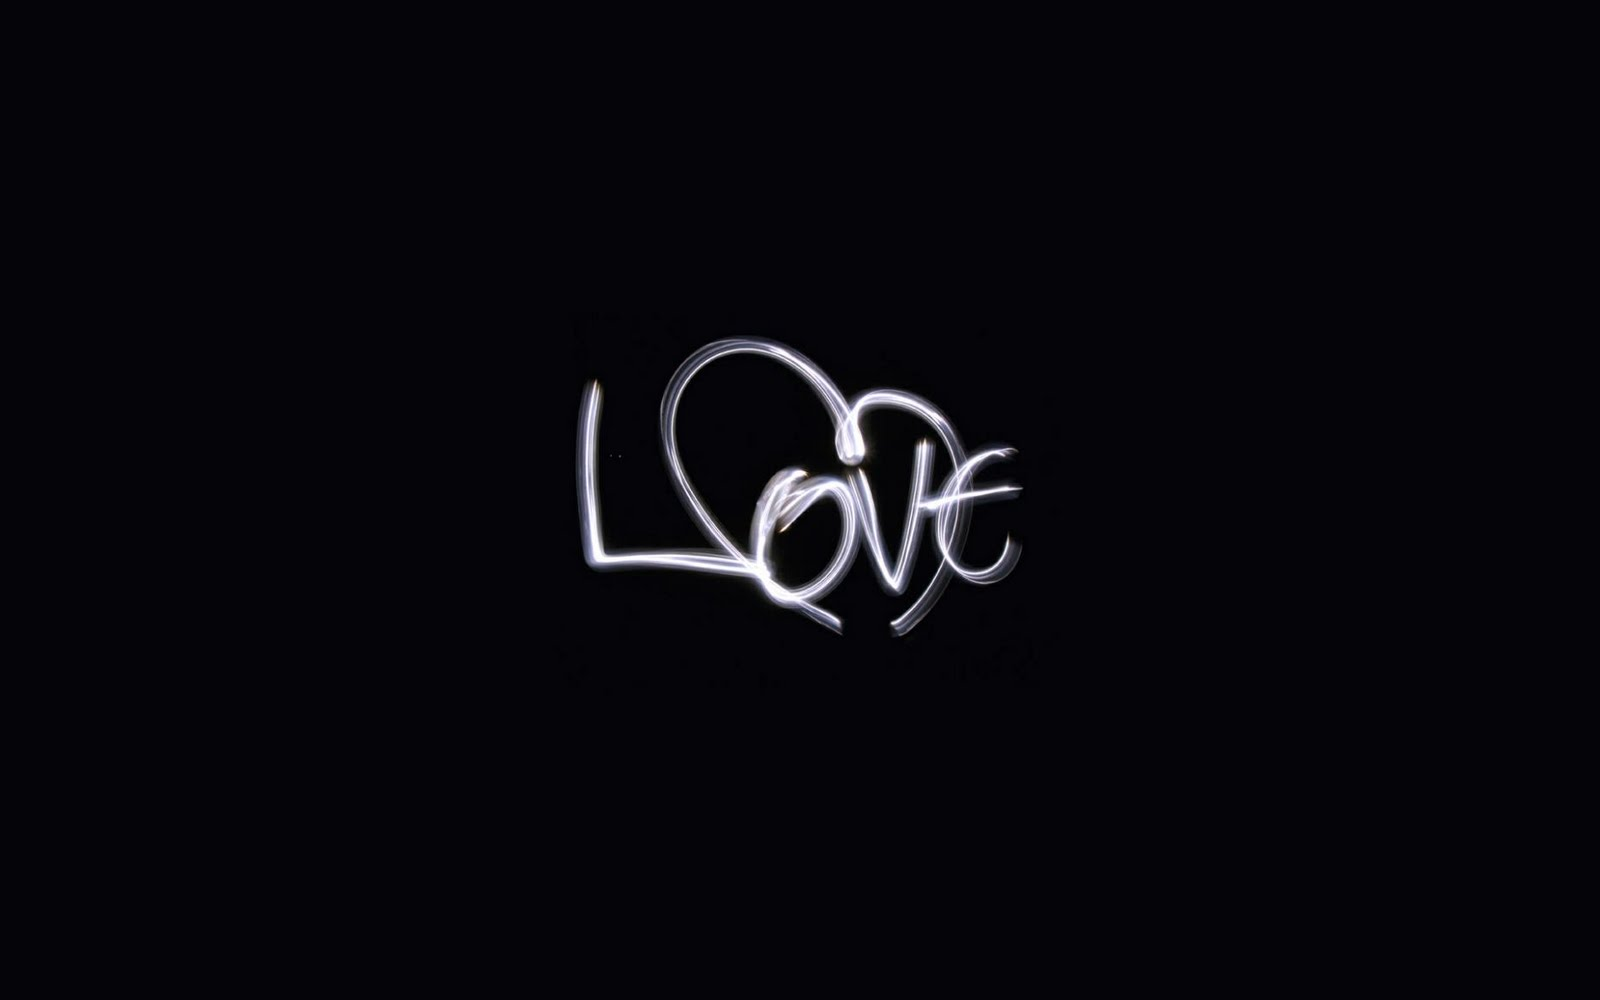 LOVE HD WALLPAPER Top HD Wallpapers